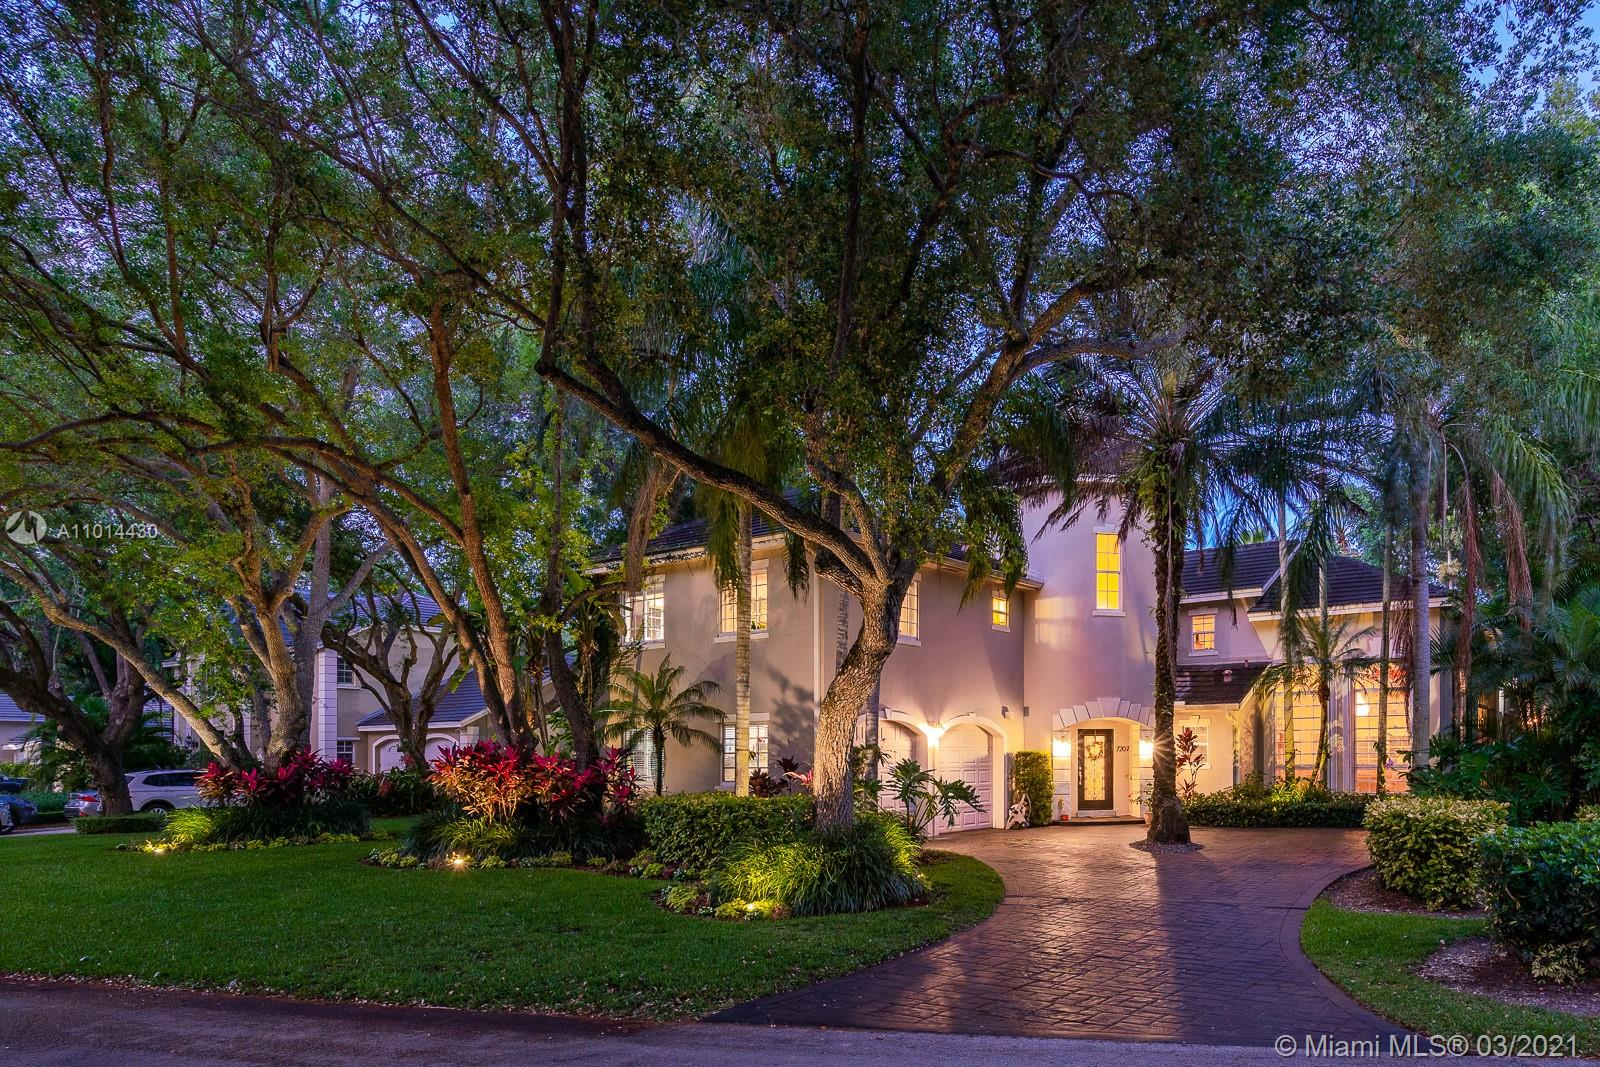 Buyers will swoon over this architecturally distinctive home in the Camelot neighborhood of Cutler Oaks, a one-of-a kind private community of only 24 residences in beautiful Palmetto Bay. A fabulous floor plan encompasses 5 true bedrms; 1 spacious suite located downstairs and 4 bedrms upstairs including THE most divine master suite. An impressive foyer entry, sweeping staircase, grand formal & informal social spaces, poolside family room, and a marvelous eat-in kitchen w/ casual dining island are the heart of this special home, but the exquisite backdrop of majestic oaks, vibrant flora, striking pool, and covered terrace are the 'show stoppers' - living al fresco has never looked so good. It's a stand-out home in a stand-out community, and the next lucky owner will be absolutely delighted!